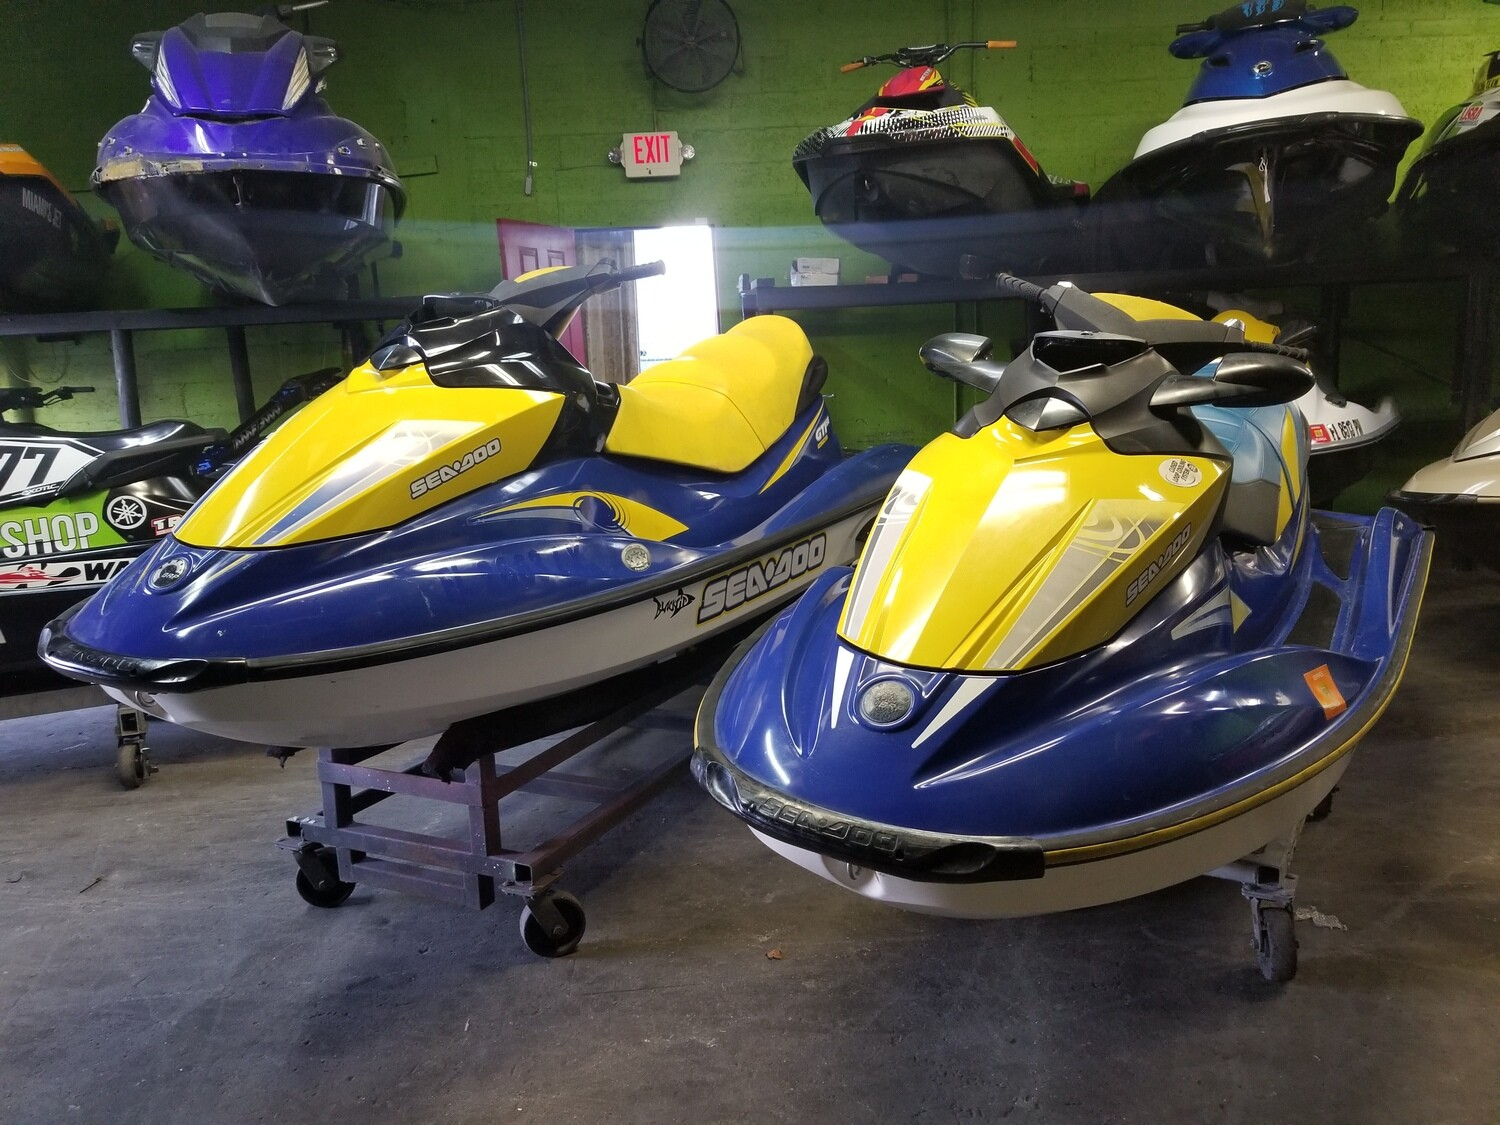 Special !  pair of 2006 Sea Doos GTI Bombardier 155 hp - 1500 cc 4 Stroke Engines Very nice condition Jetskis and a trailer